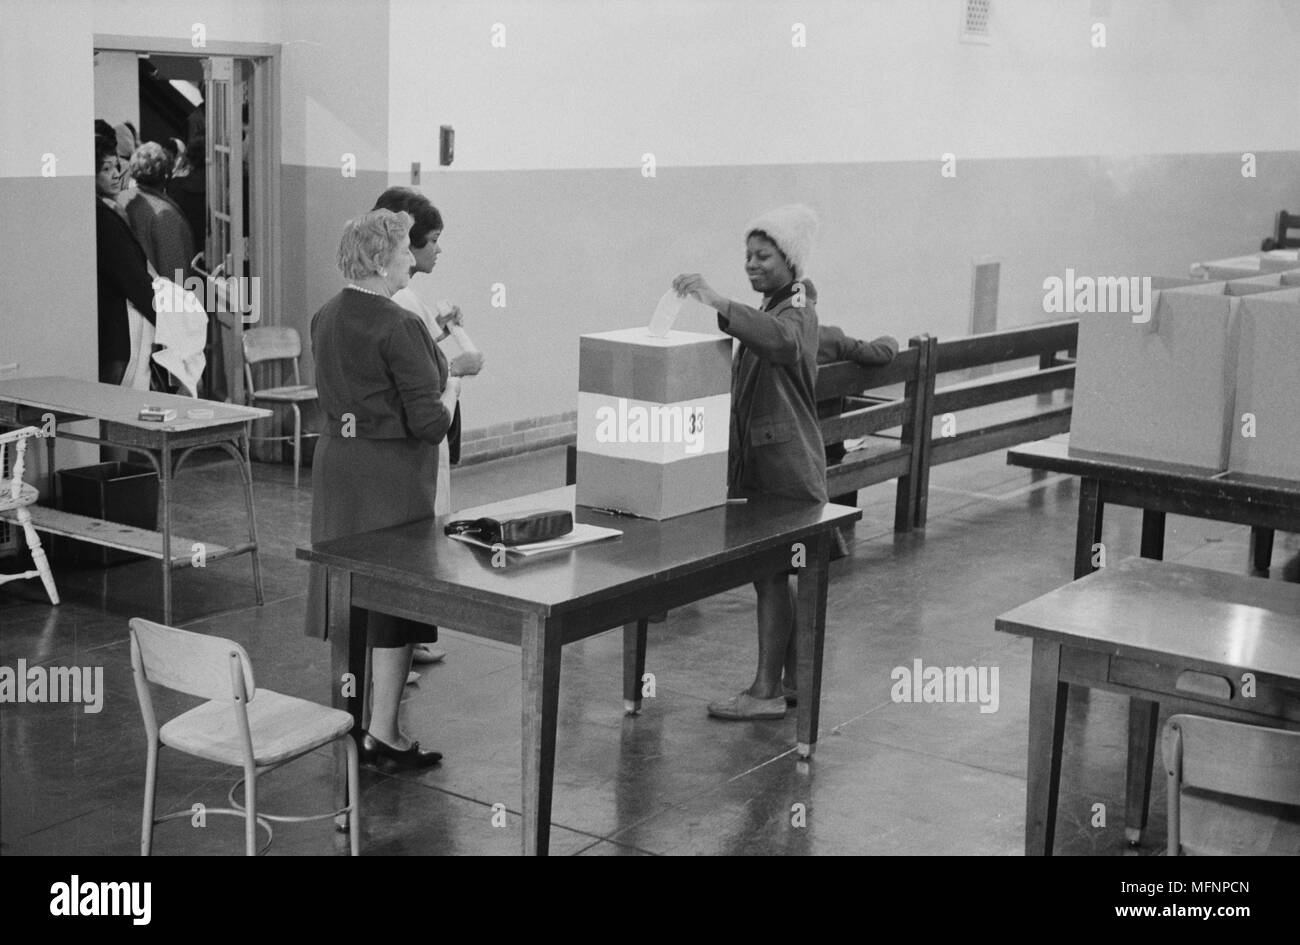 Young African American woman casting her vote in a ballot box at voting station in the Cardoza High School building, Washington. DC, 3 May 1964. Photographer:  Marion S Trikosko. - Stock Image